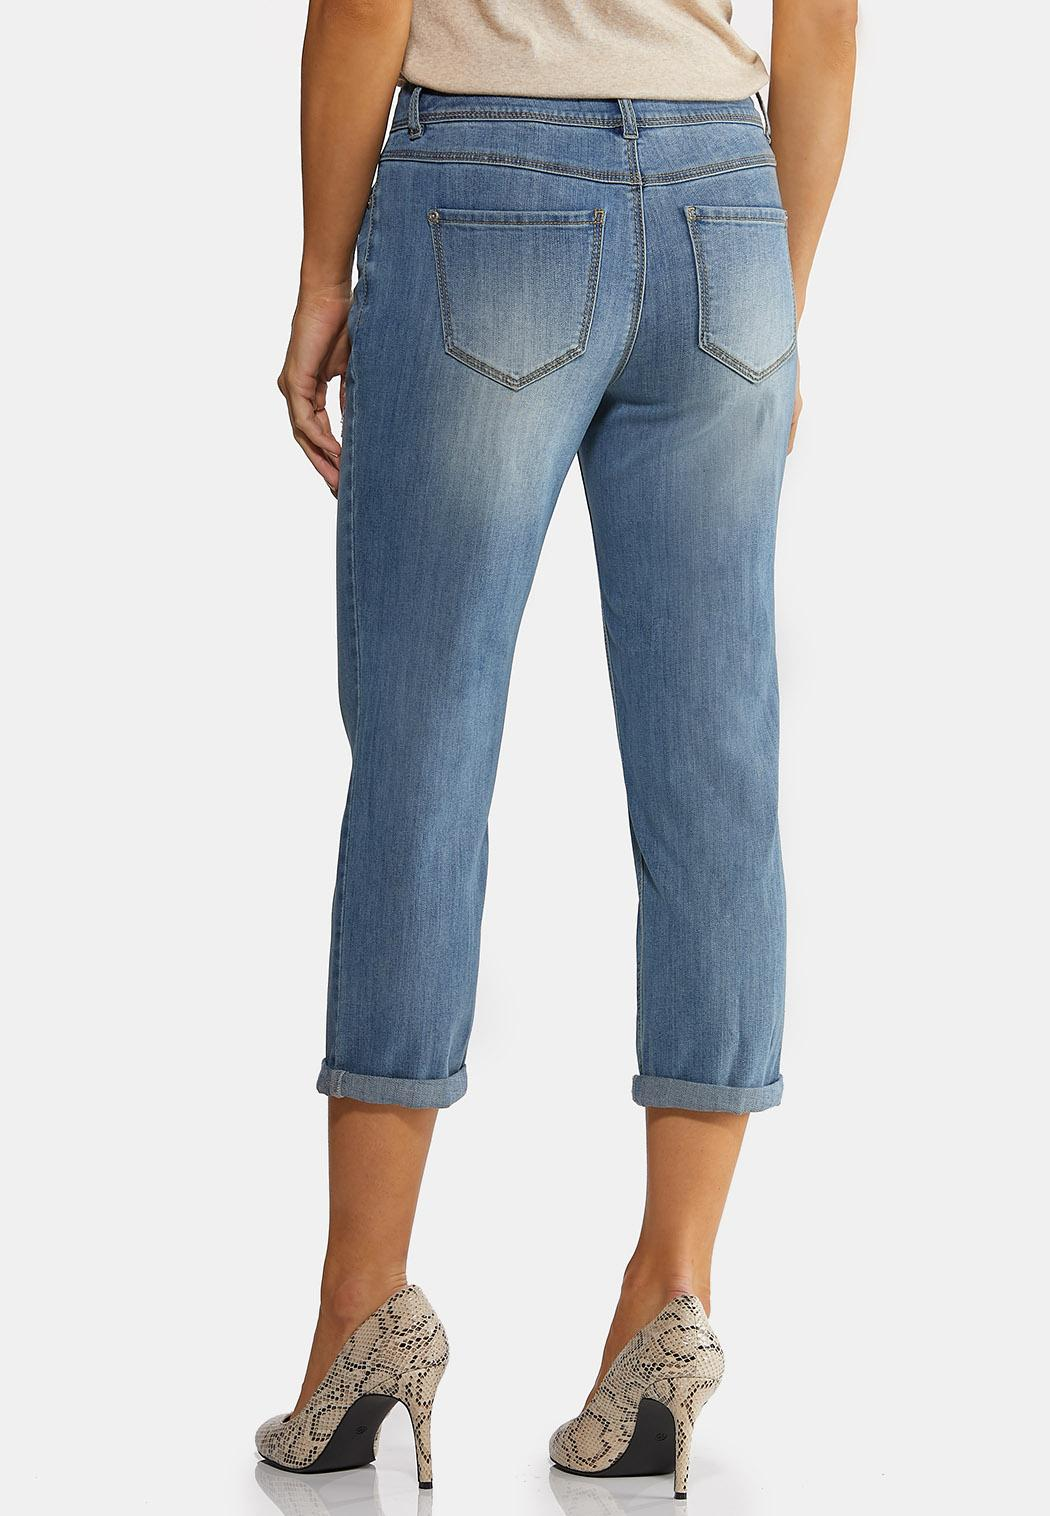 Cropped Distressed Girlfriend Jeans (Item #44156970)